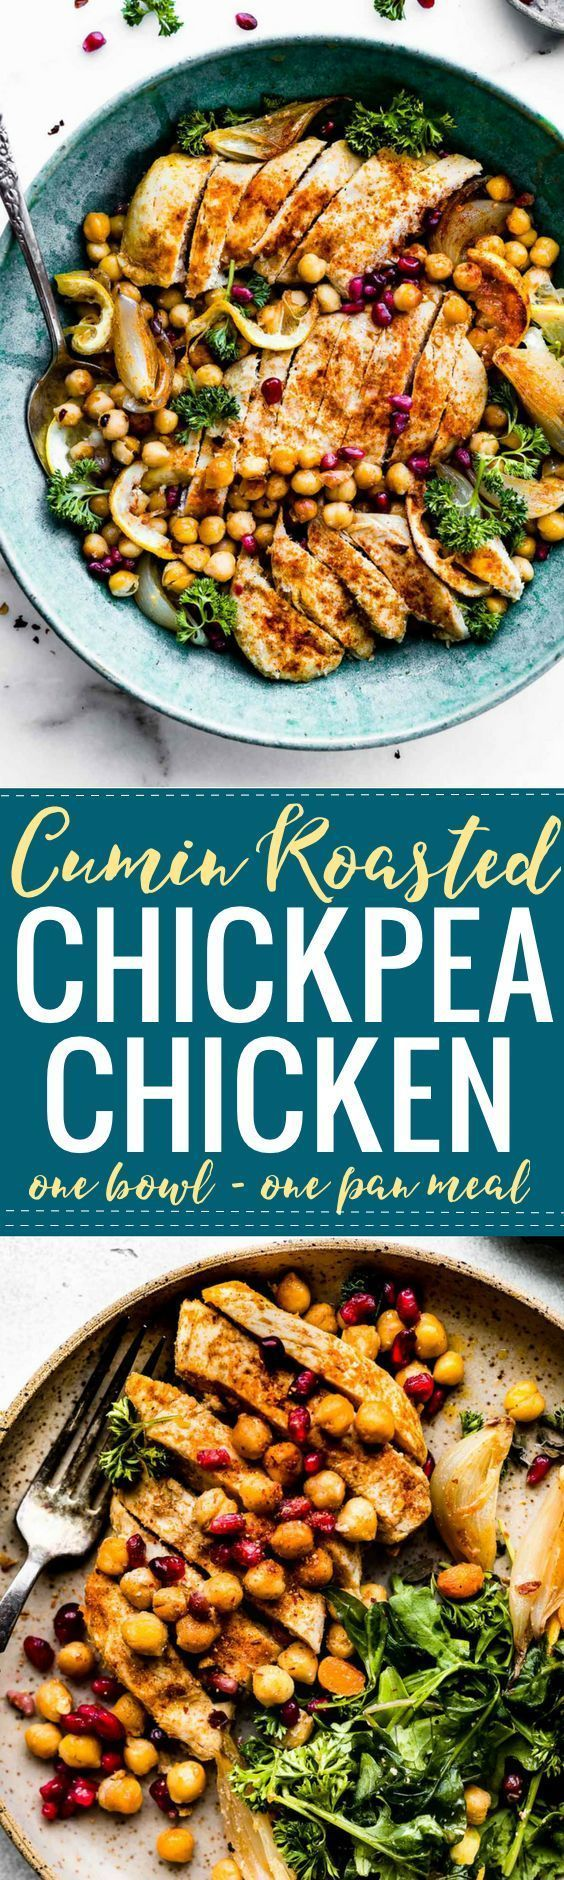 267 best Healthy Chicken Recipes images on Pinterest | Cooking food ...